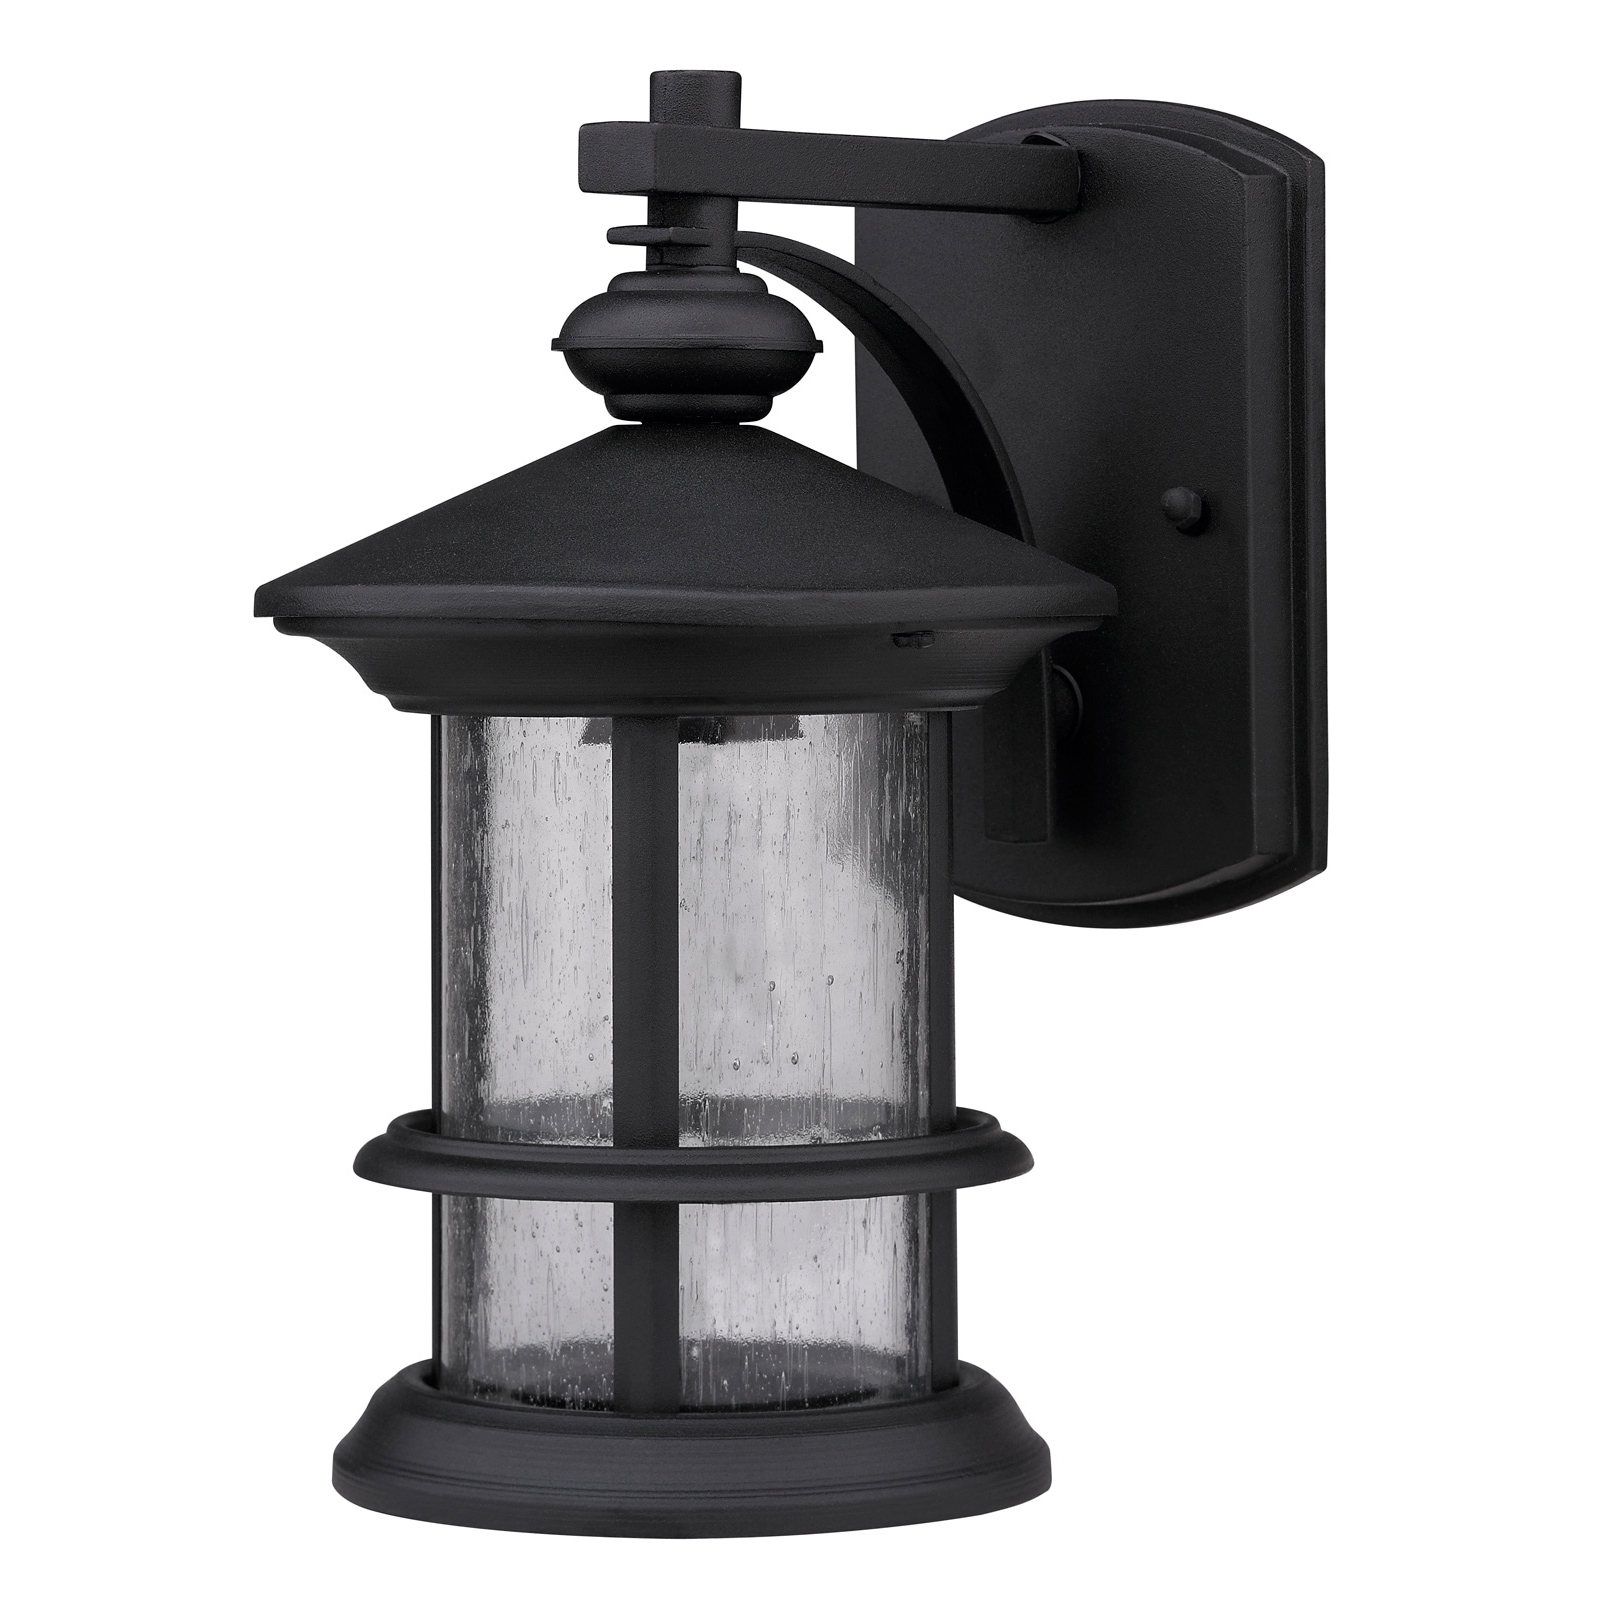 Newest Transitional Black One Light Weatherproof Outdoor Wall Fixture Pertaining To Transitional Outdoor Wall Lighting (View 3 of 20)